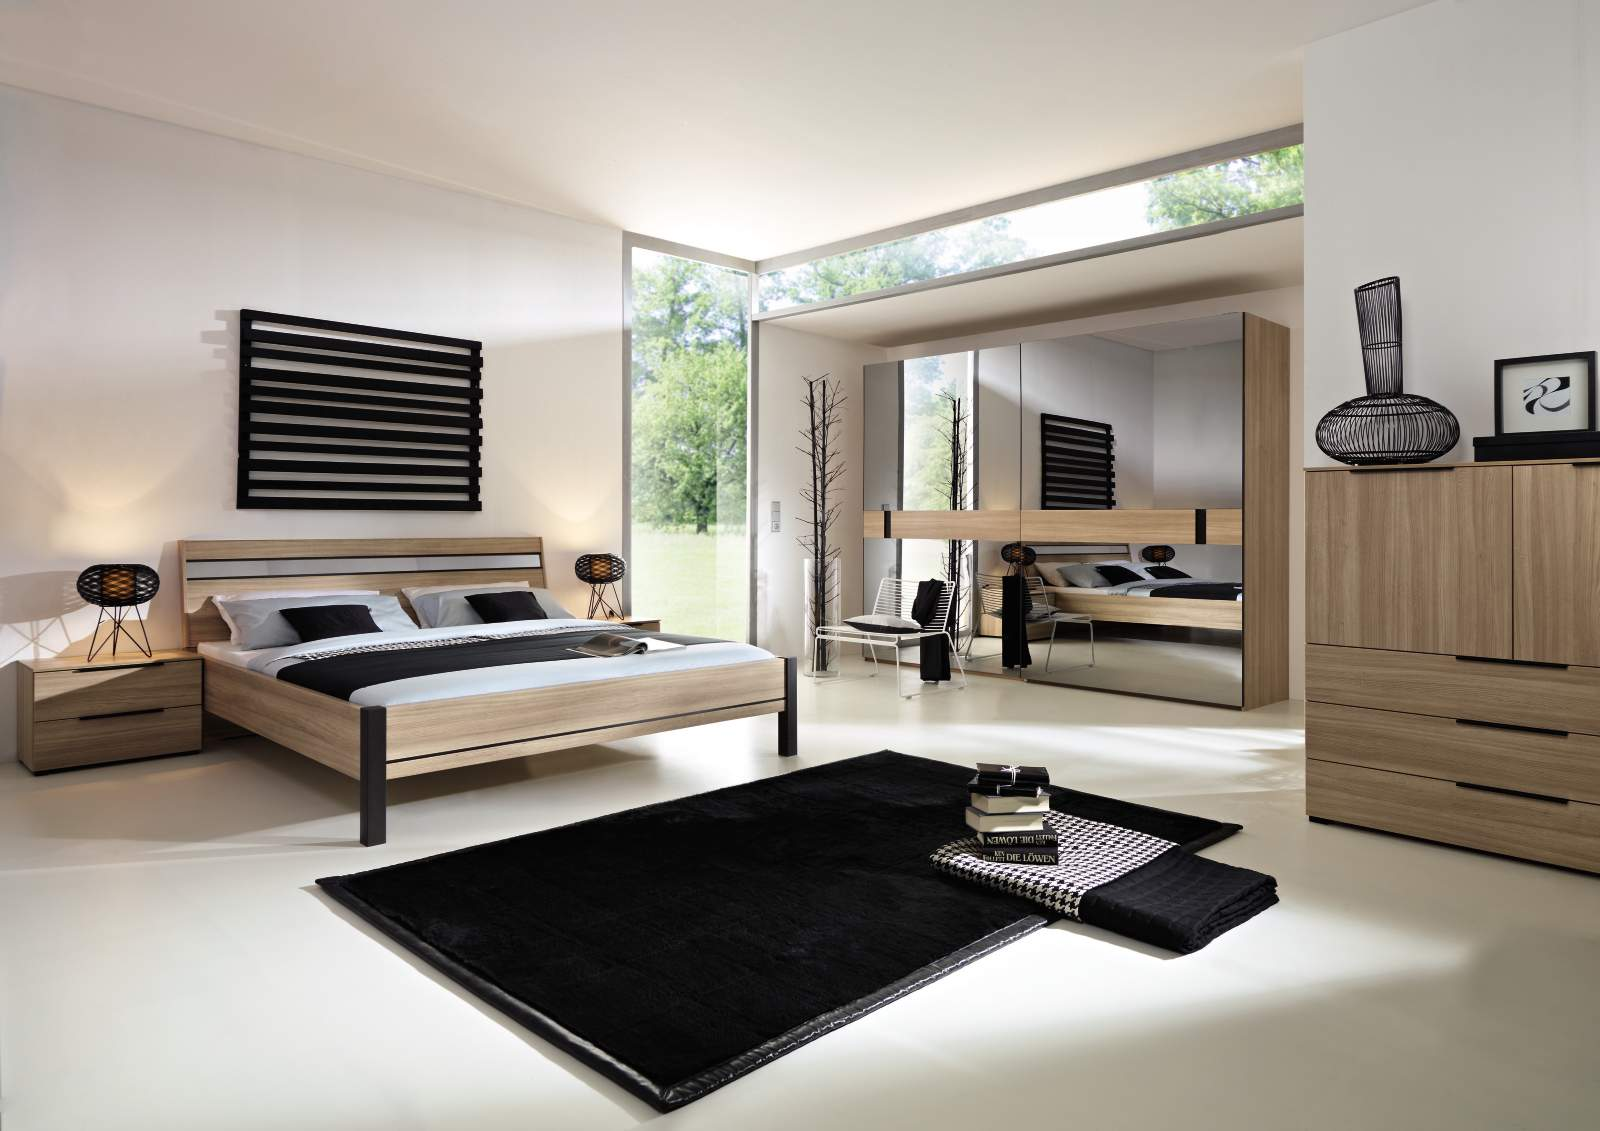 rauch x markt einsiedler massivm bel polsterm bel gartenm bel. Black Bedroom Furniture Sets. Home Design Ideas